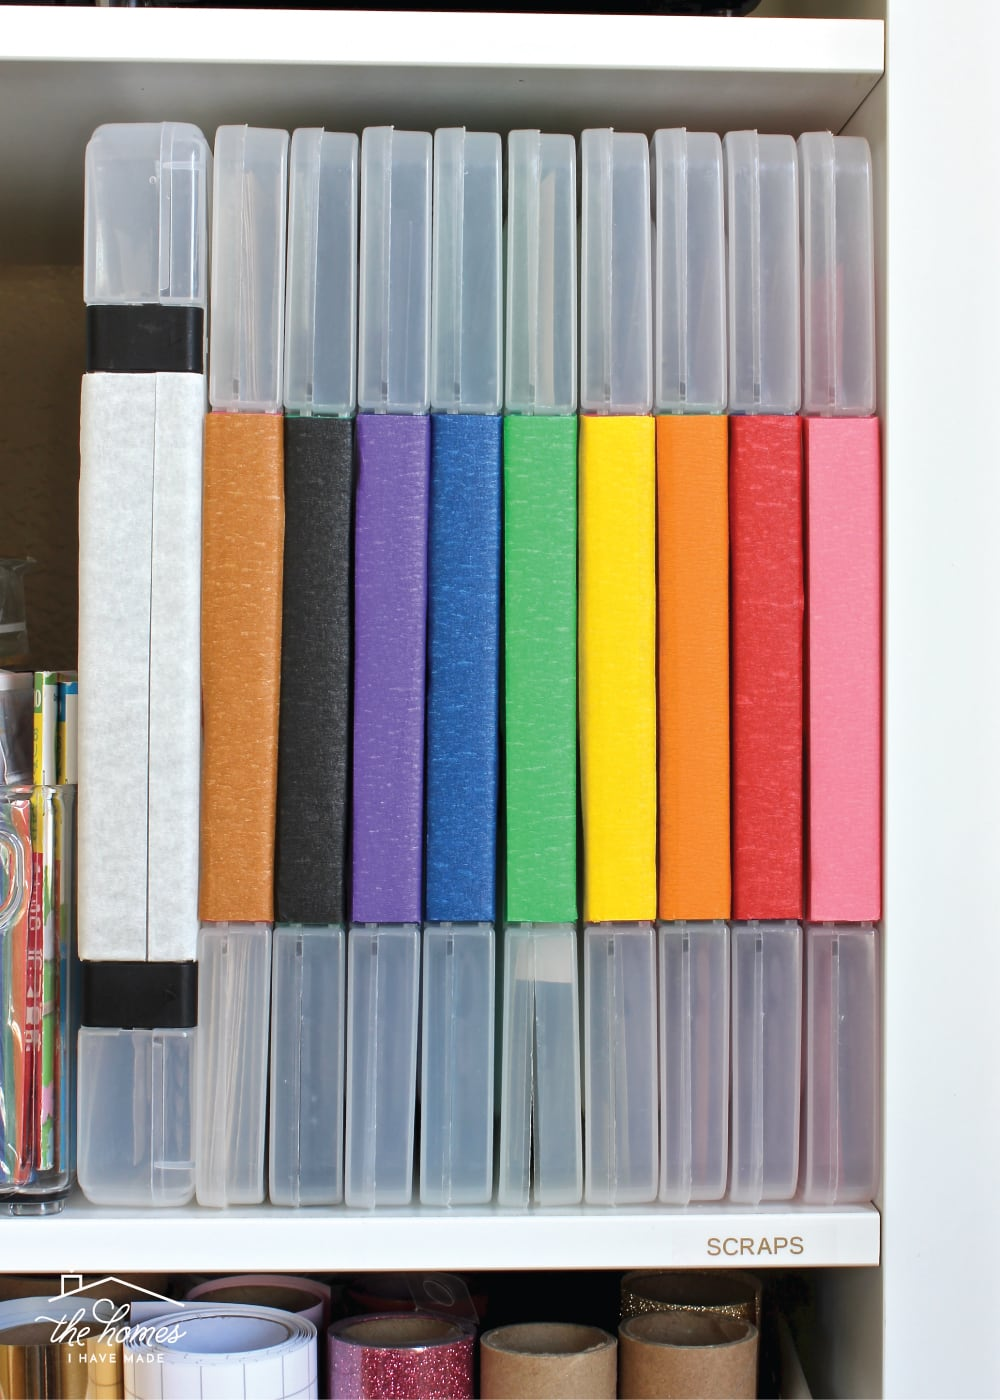 Sharing smart and simple solutions for storing all the craft papers from cardstock and pads to rolls and more!